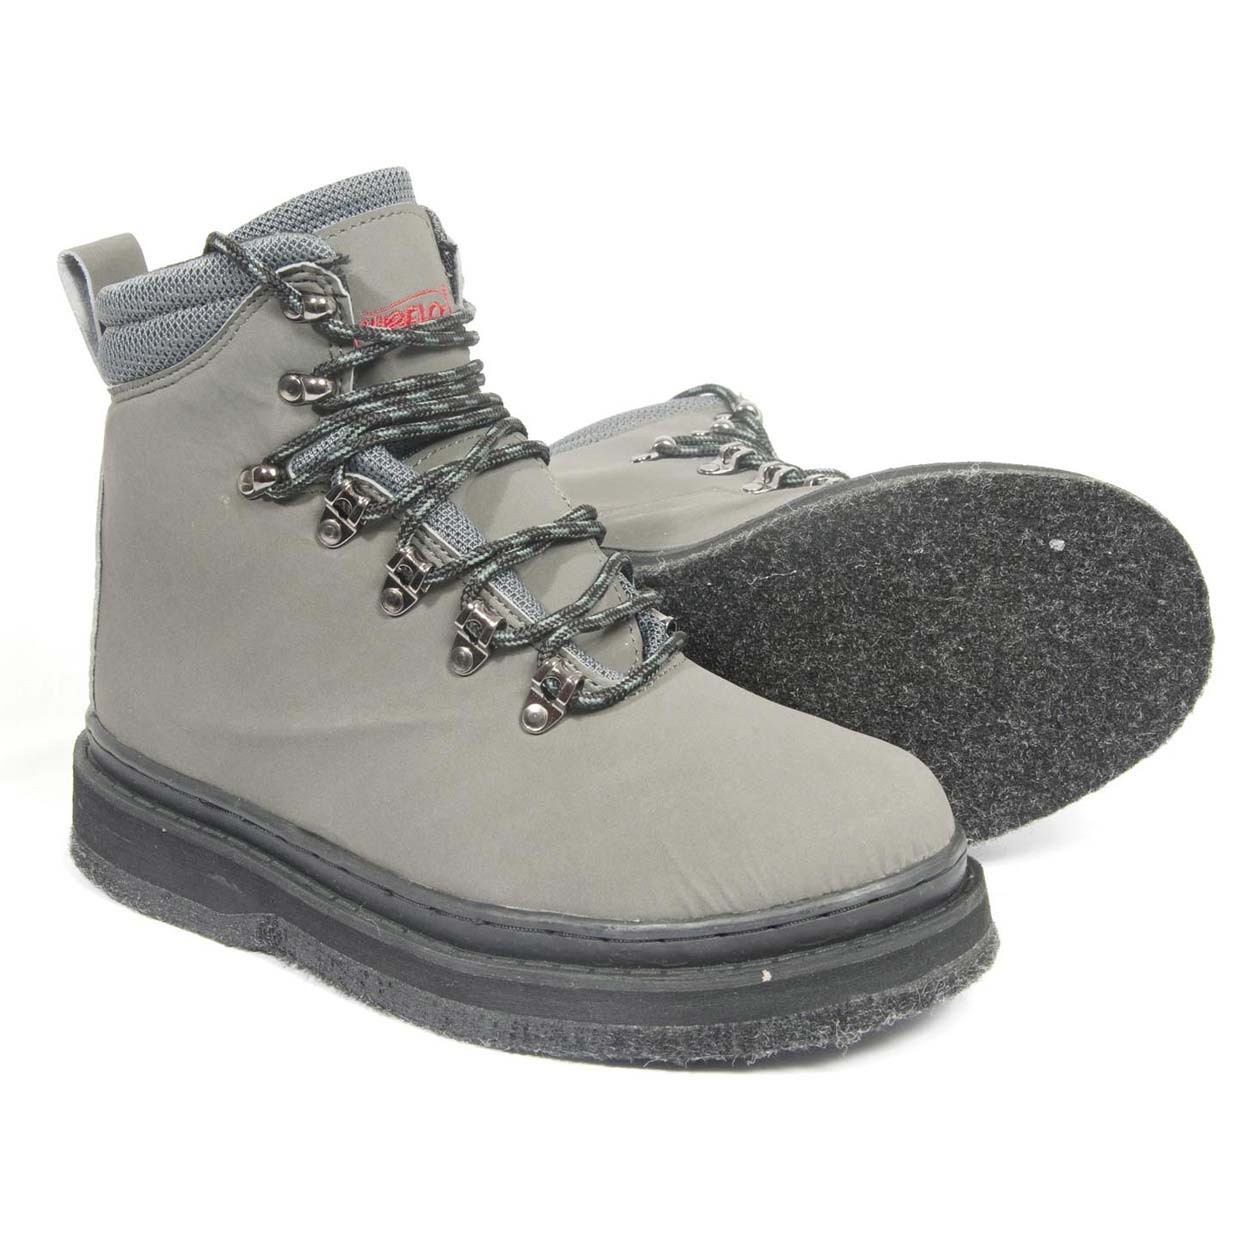 Airflo delta felt sole wading boots glasgow angling centre for Wading shoes for fishing